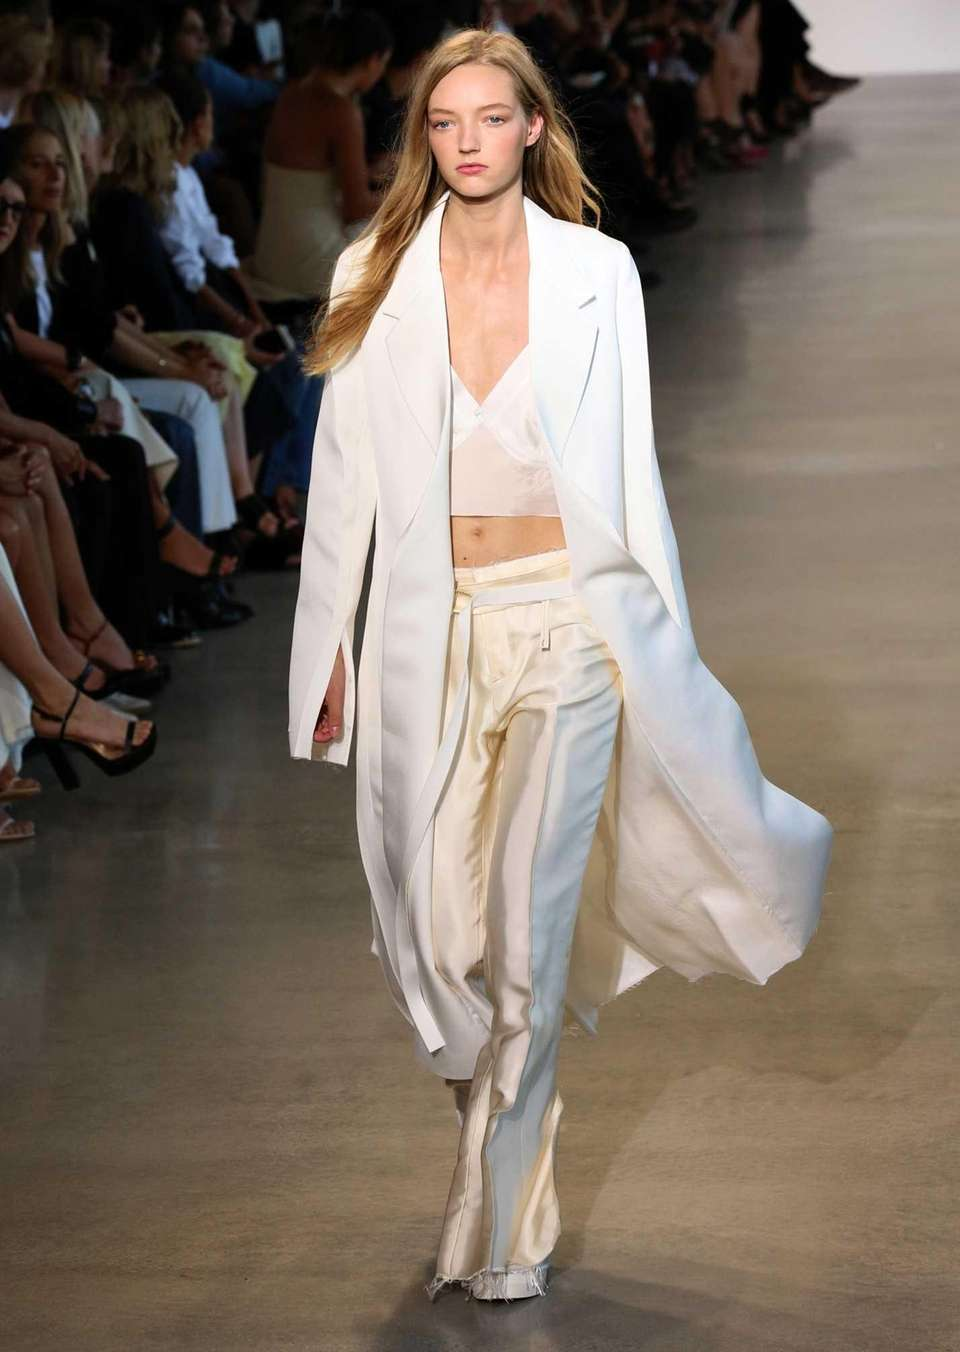 Fashion Week Spring 2016: Must-see runway looks and show